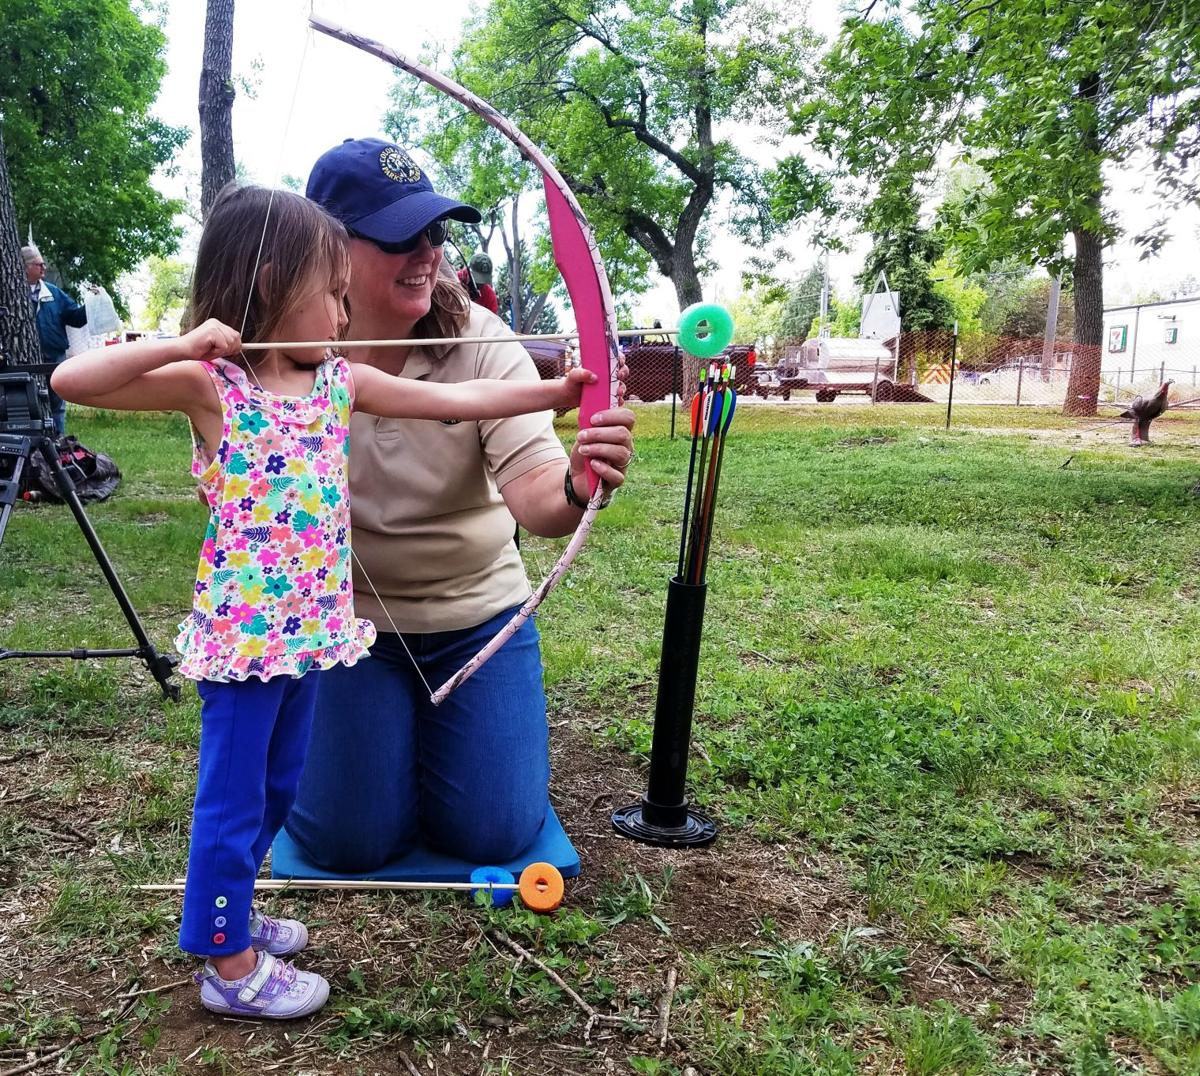 Free fishing, paddleboarding, climbing and more at Colorado Springs Get Outdoors Day